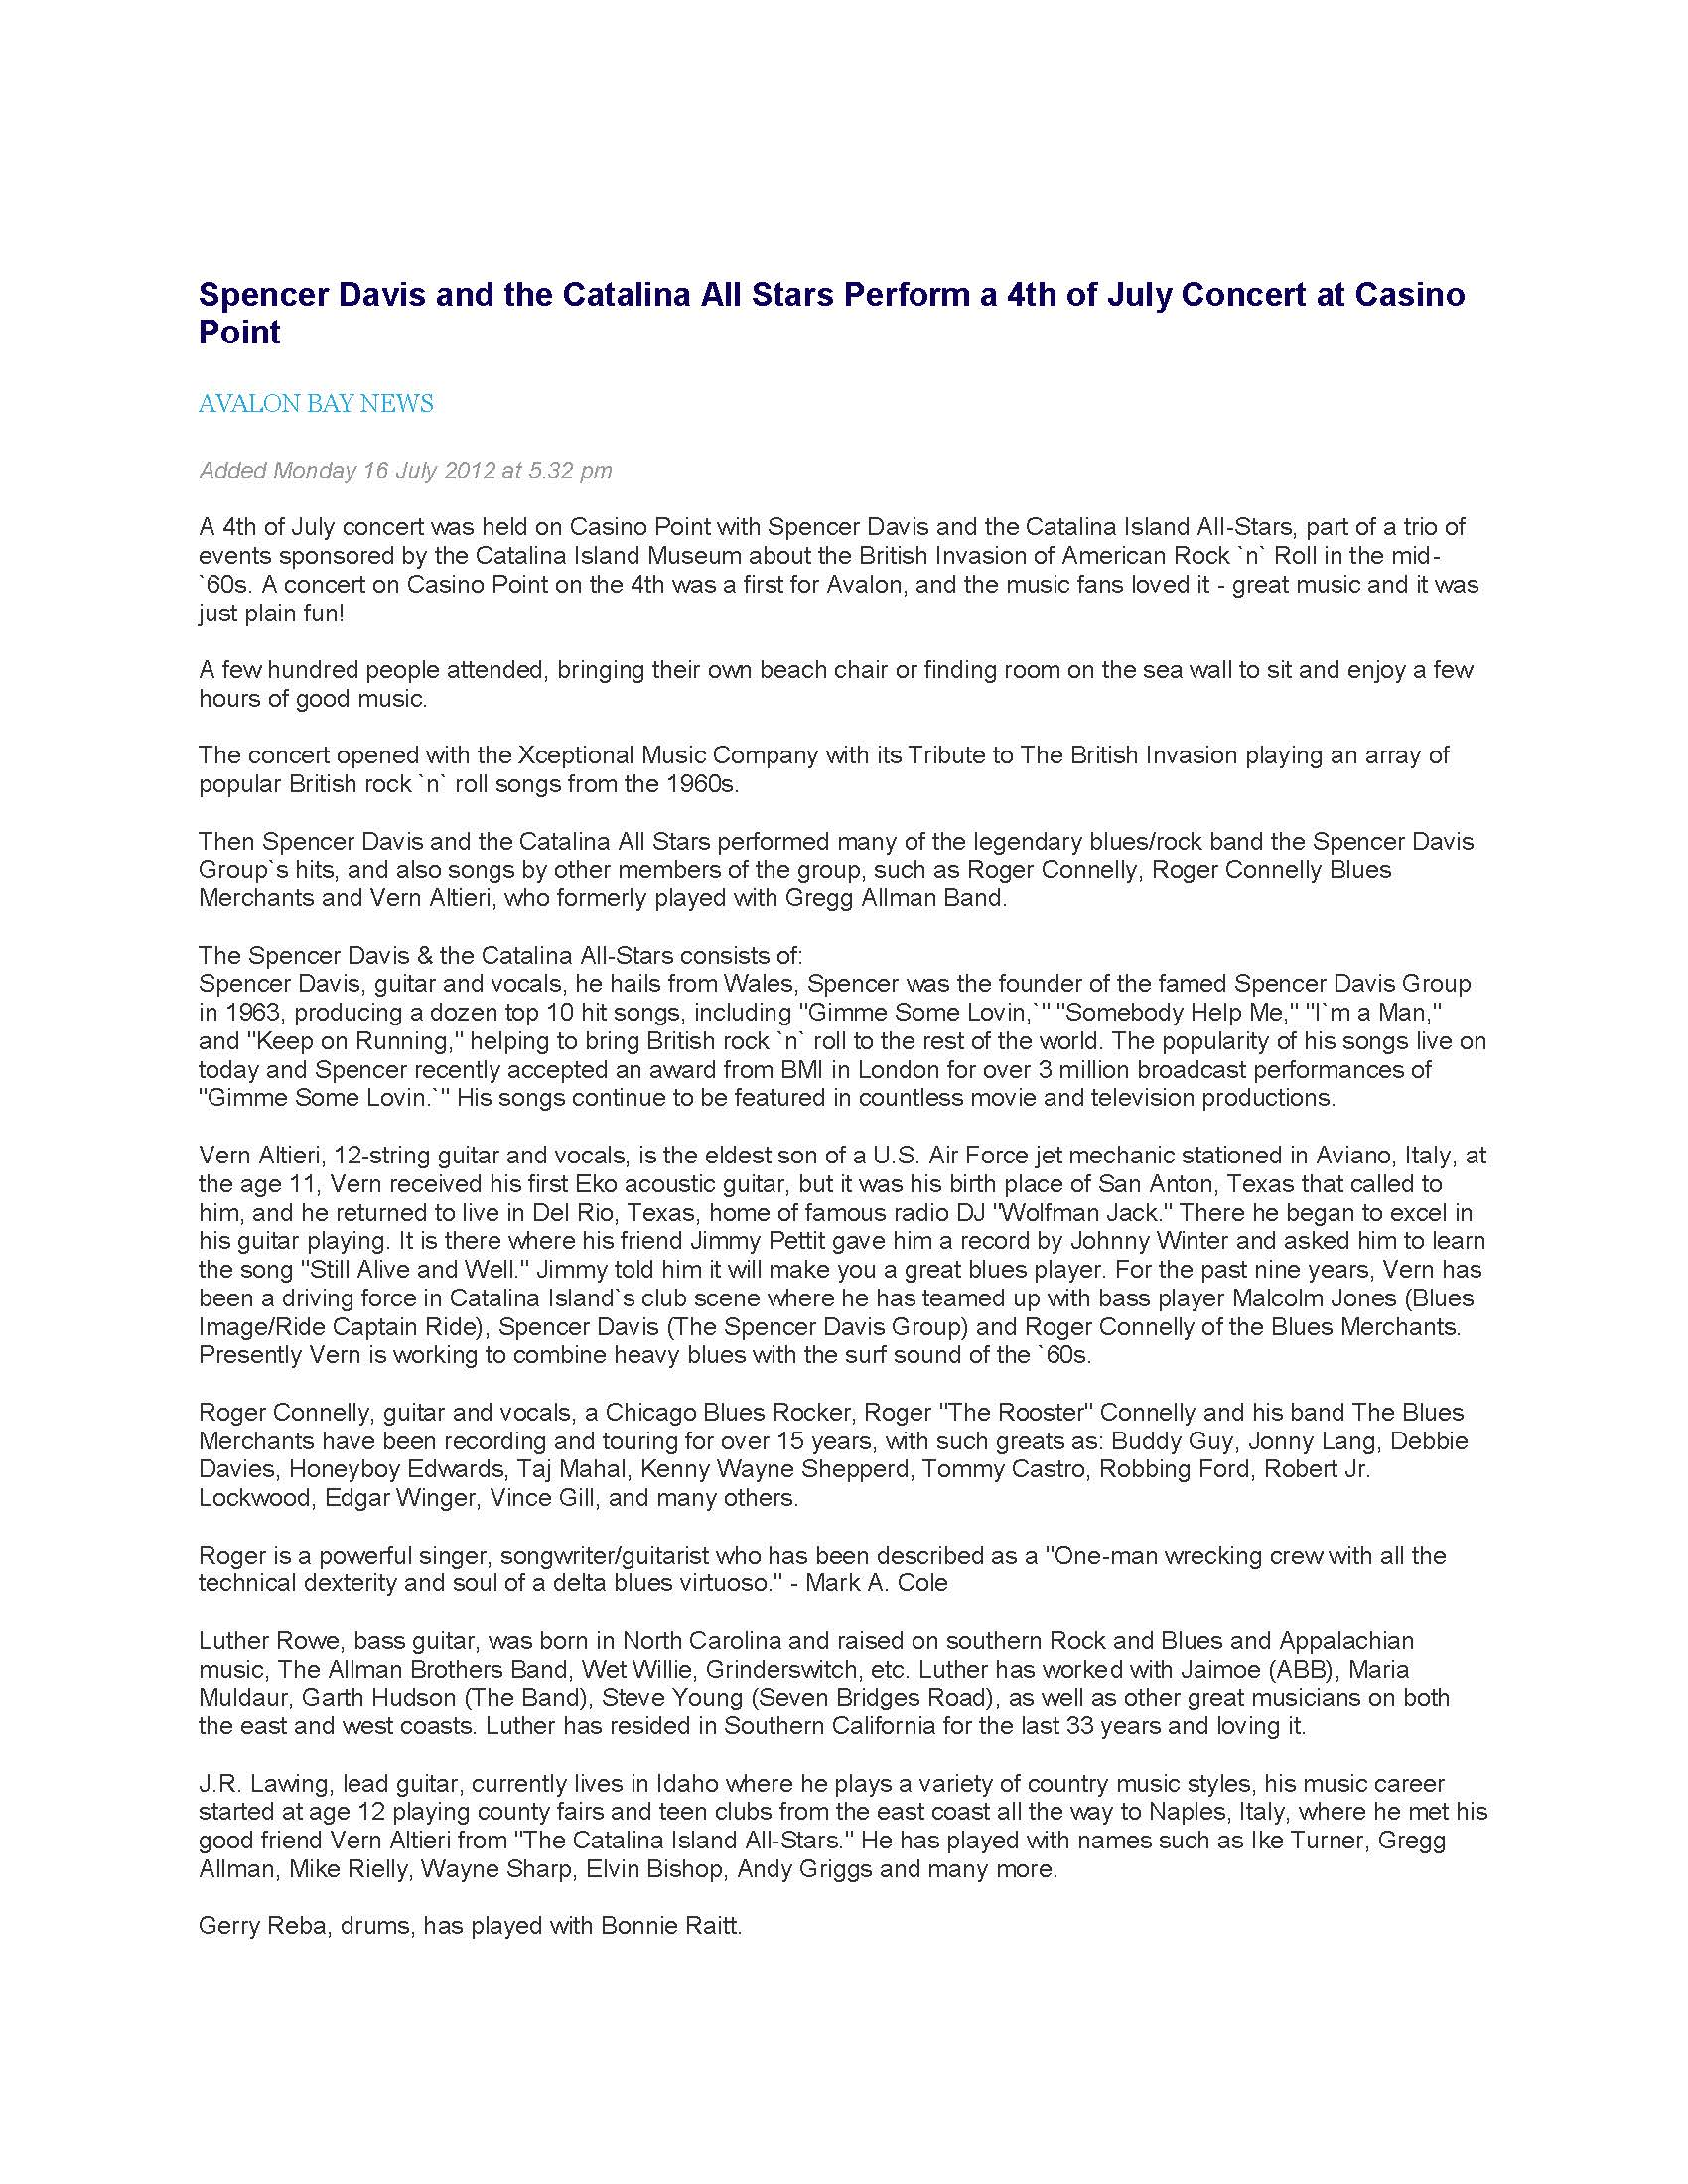 Avalon-Bay-News-Spencer-Davis-and-the-Catalina-All-Stars-Perform-a-4th-of-July-Concert-at-Casino-Point_Page_1